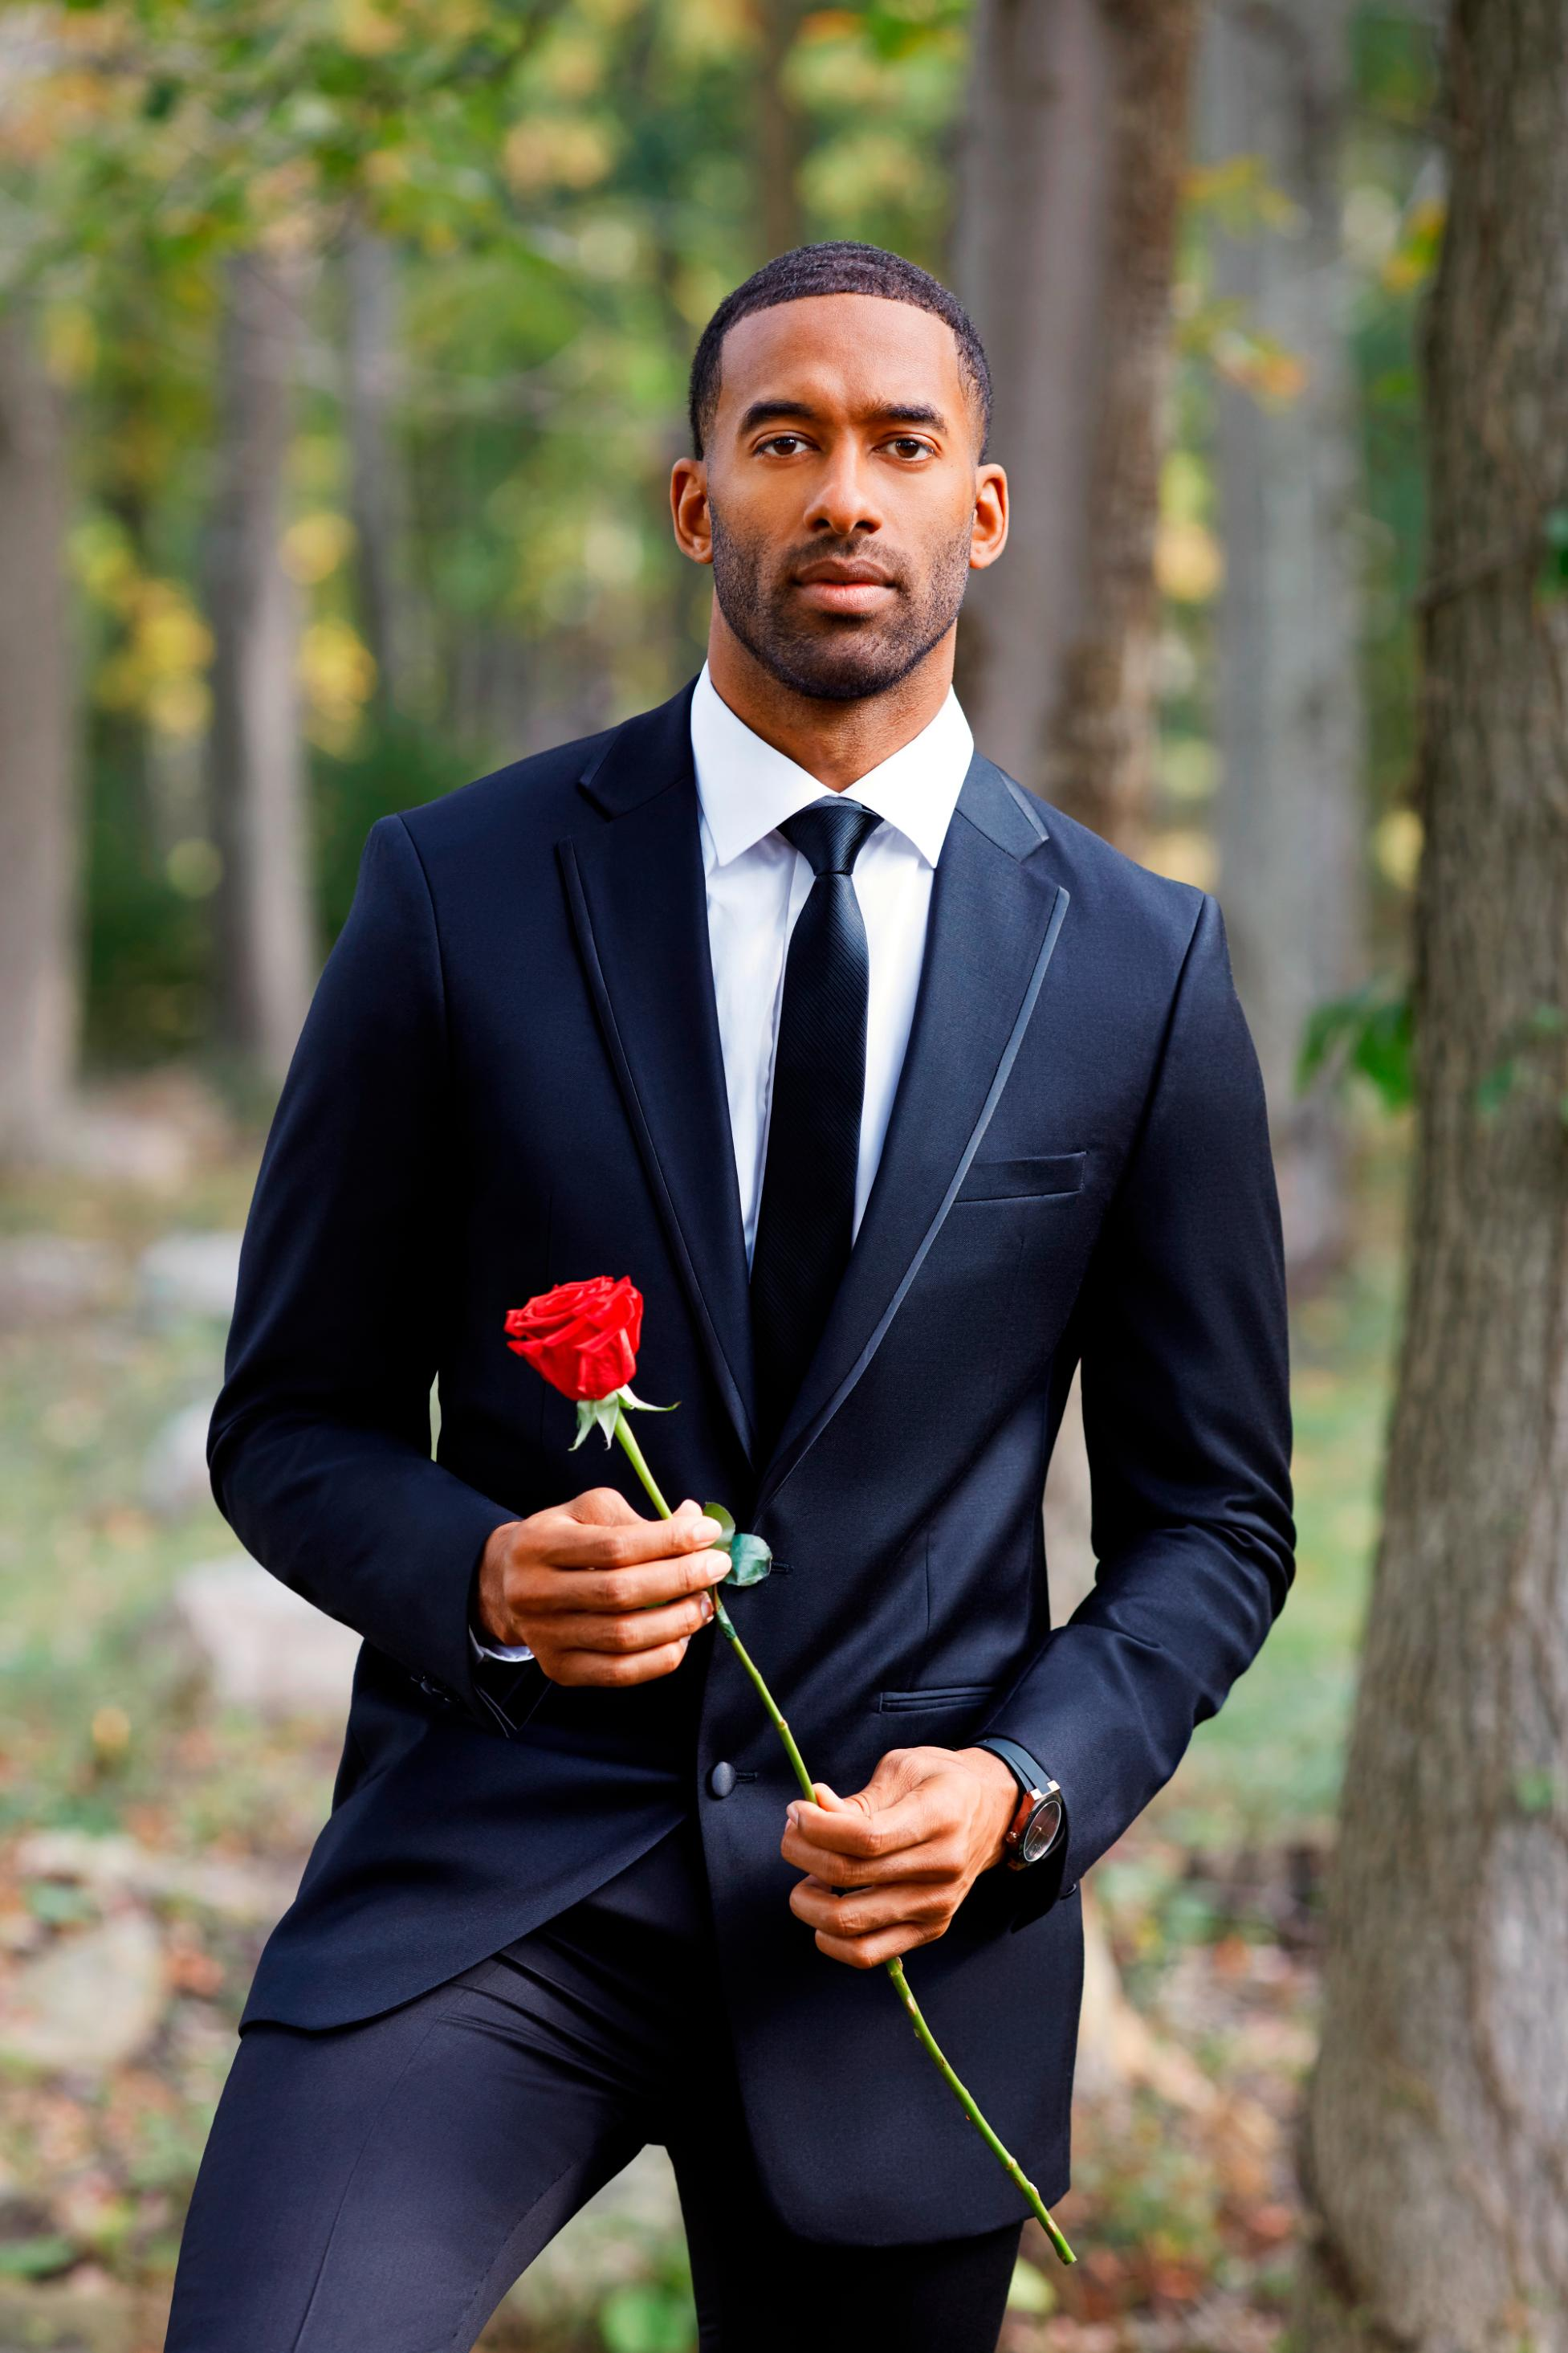 'Bachelor' contestant nearly collapses during rose ceremony